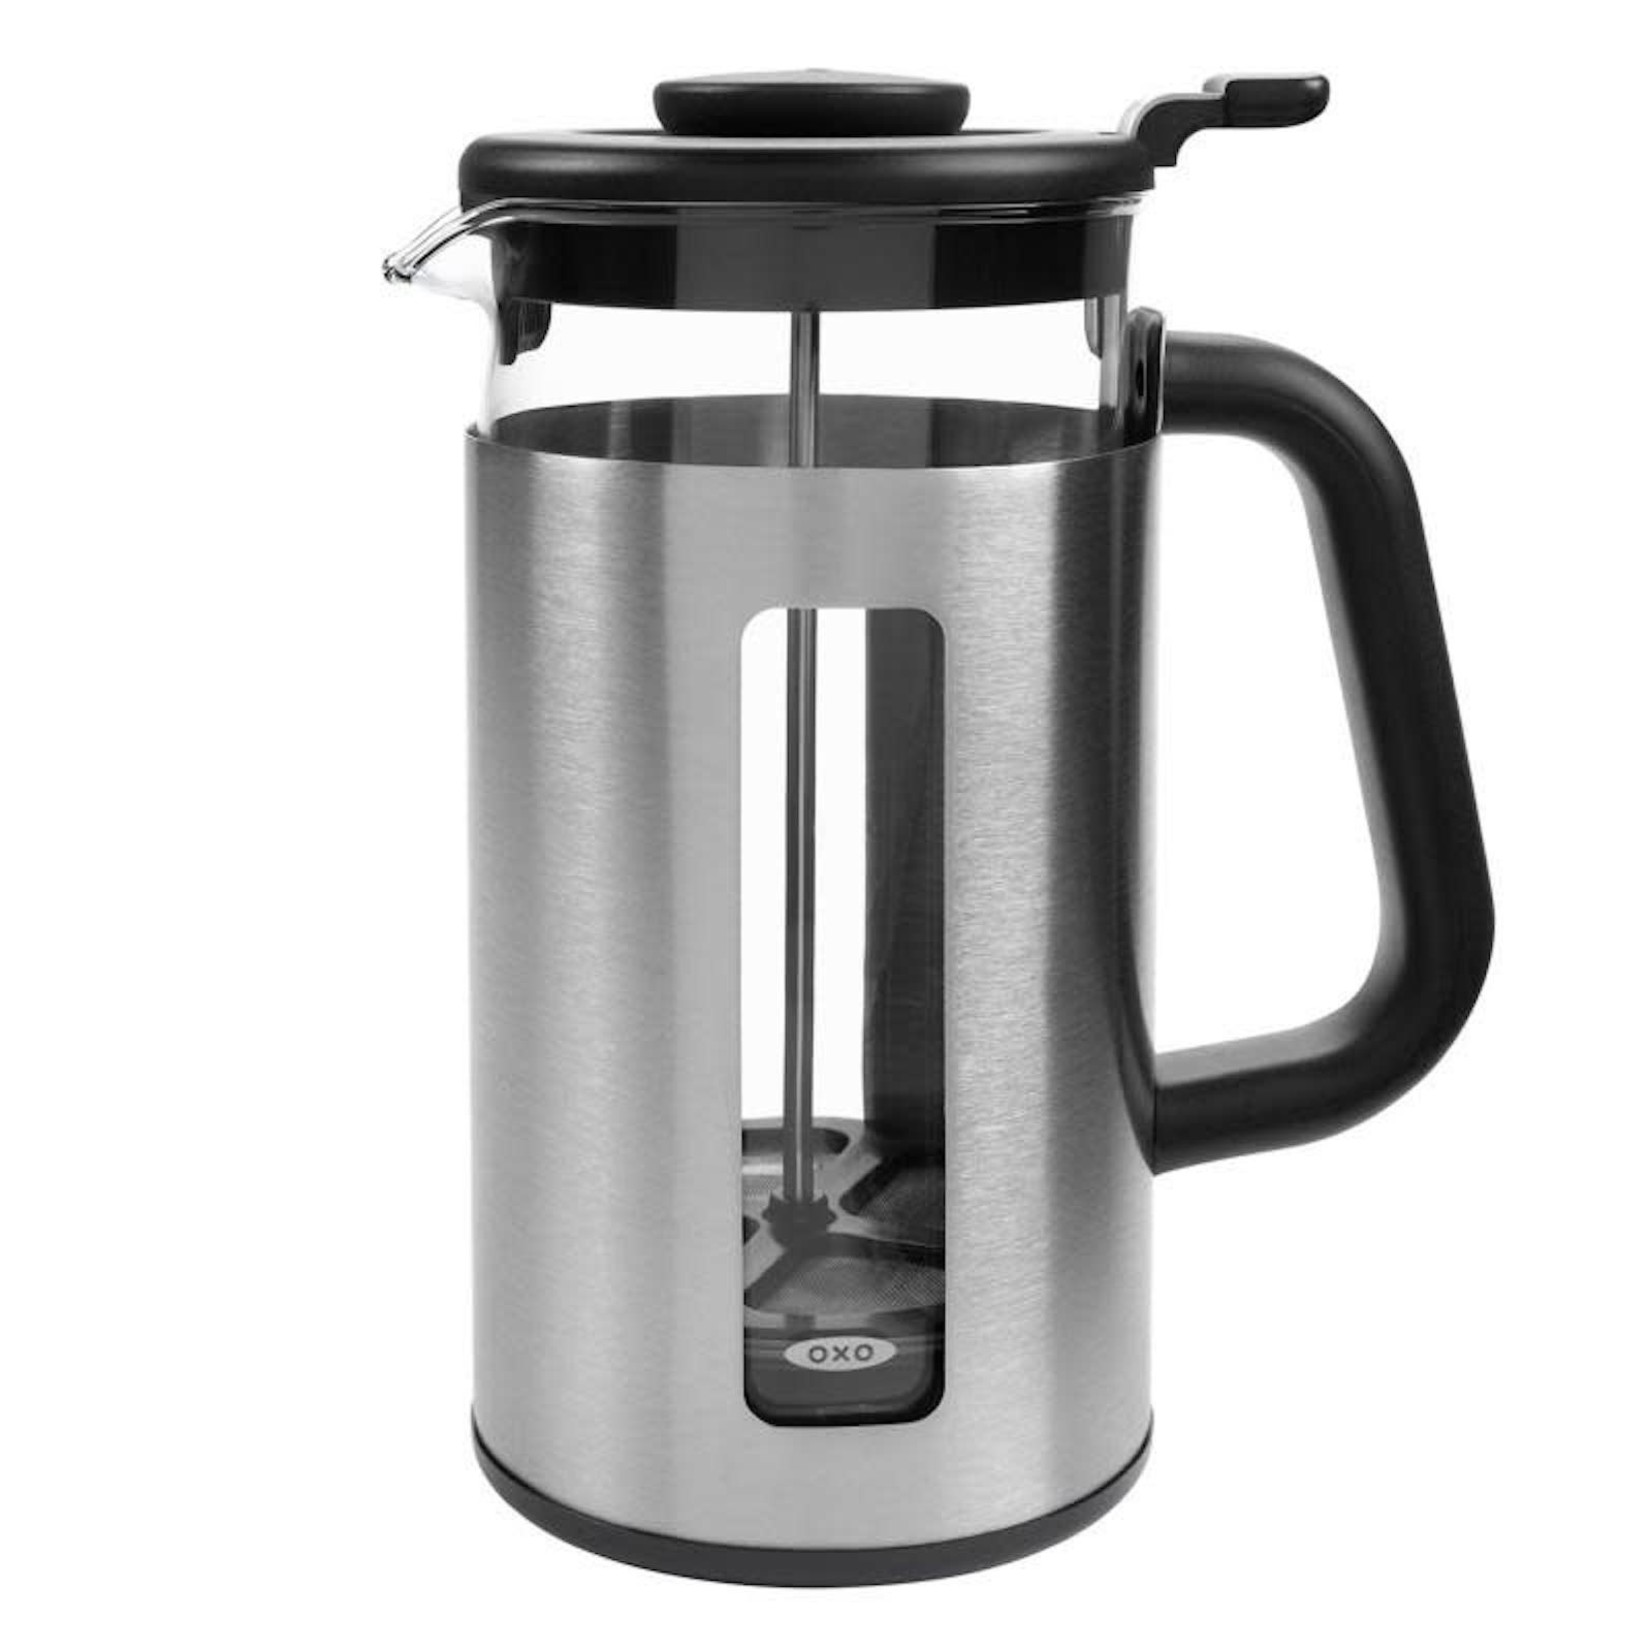 OXO French Press Coffee Maker 8-Cup